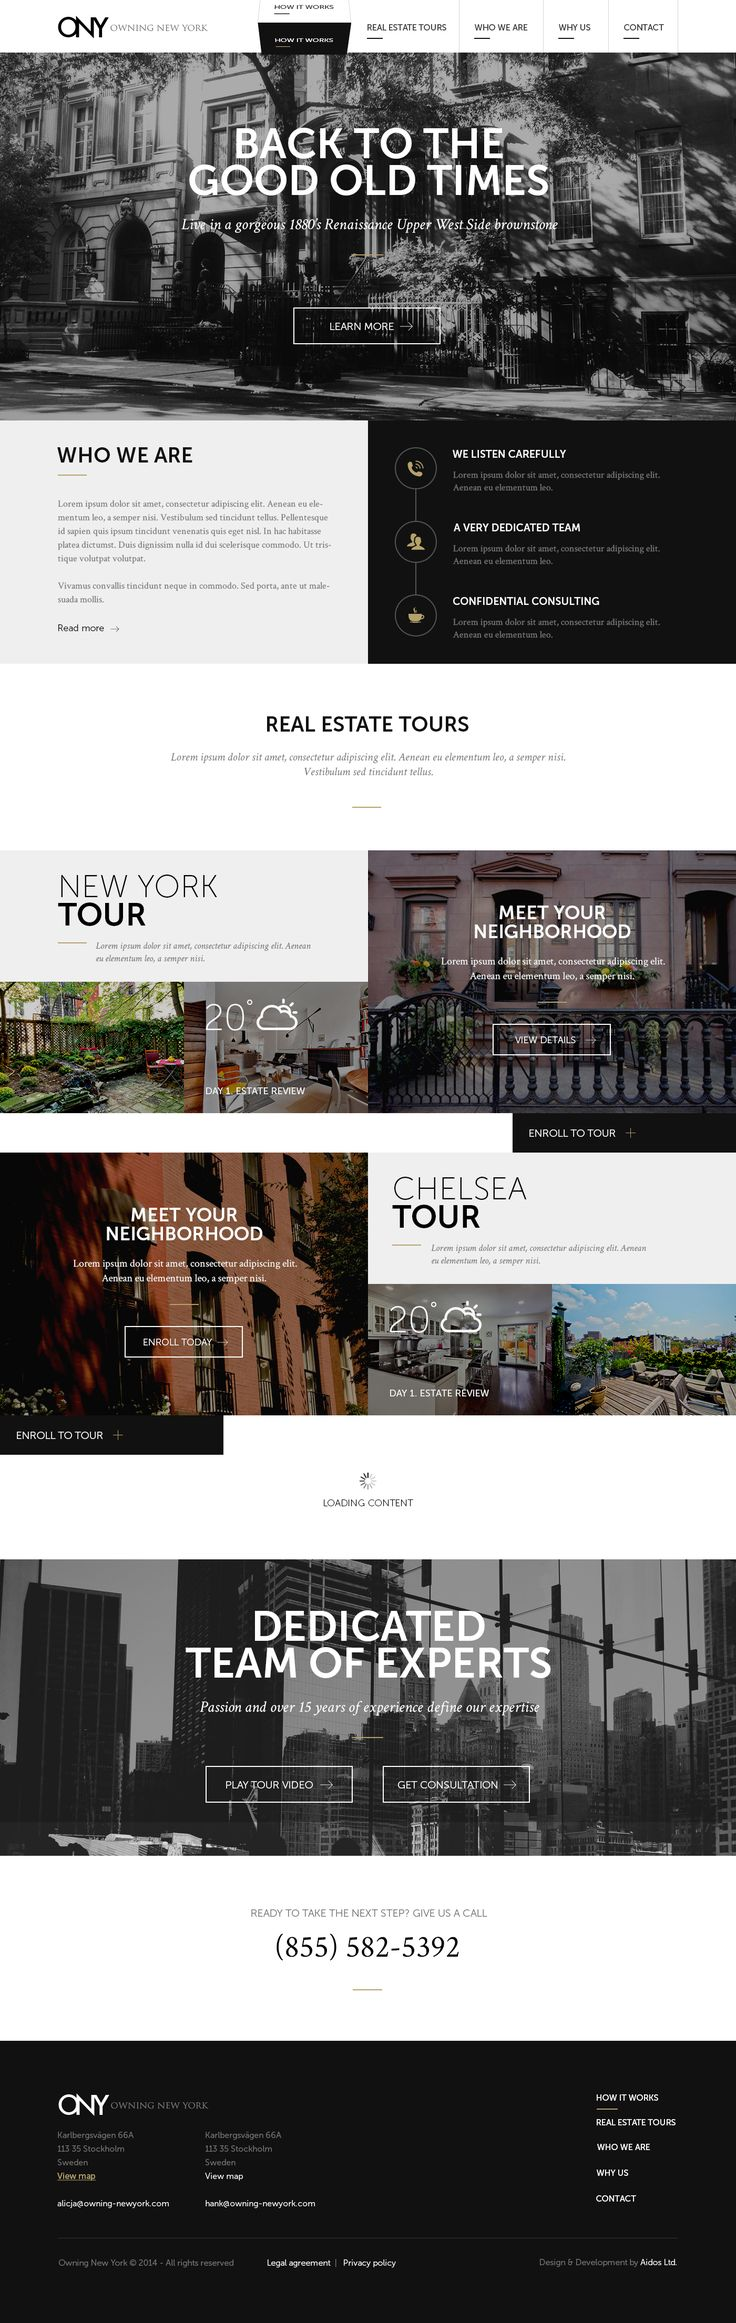 web design | Project Owning New York > landing page